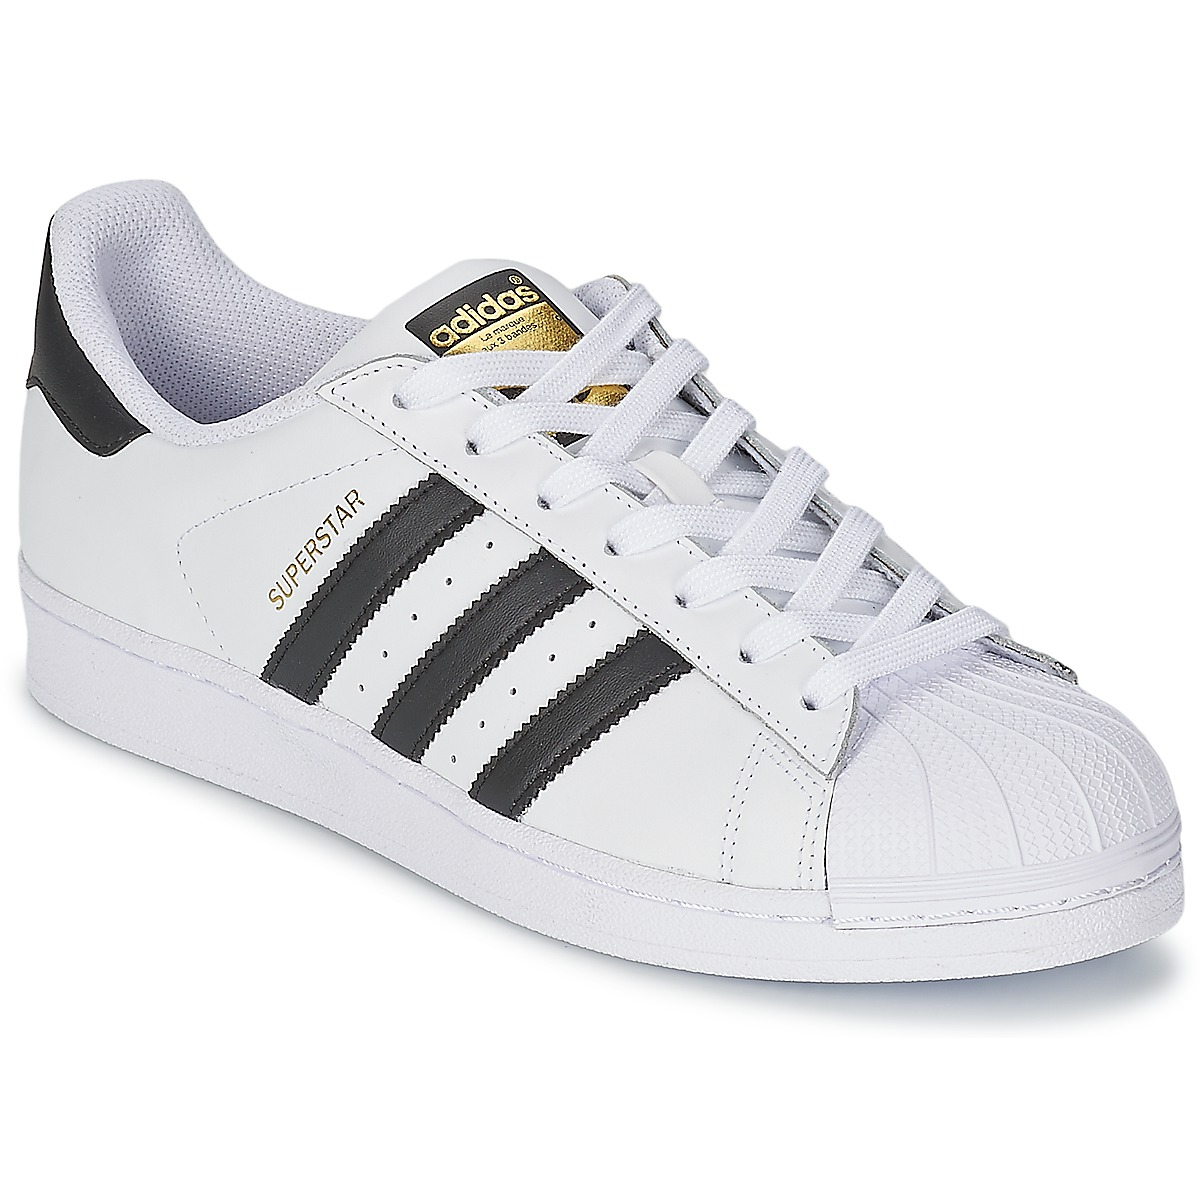 Adidas Sneakers Kindermaat